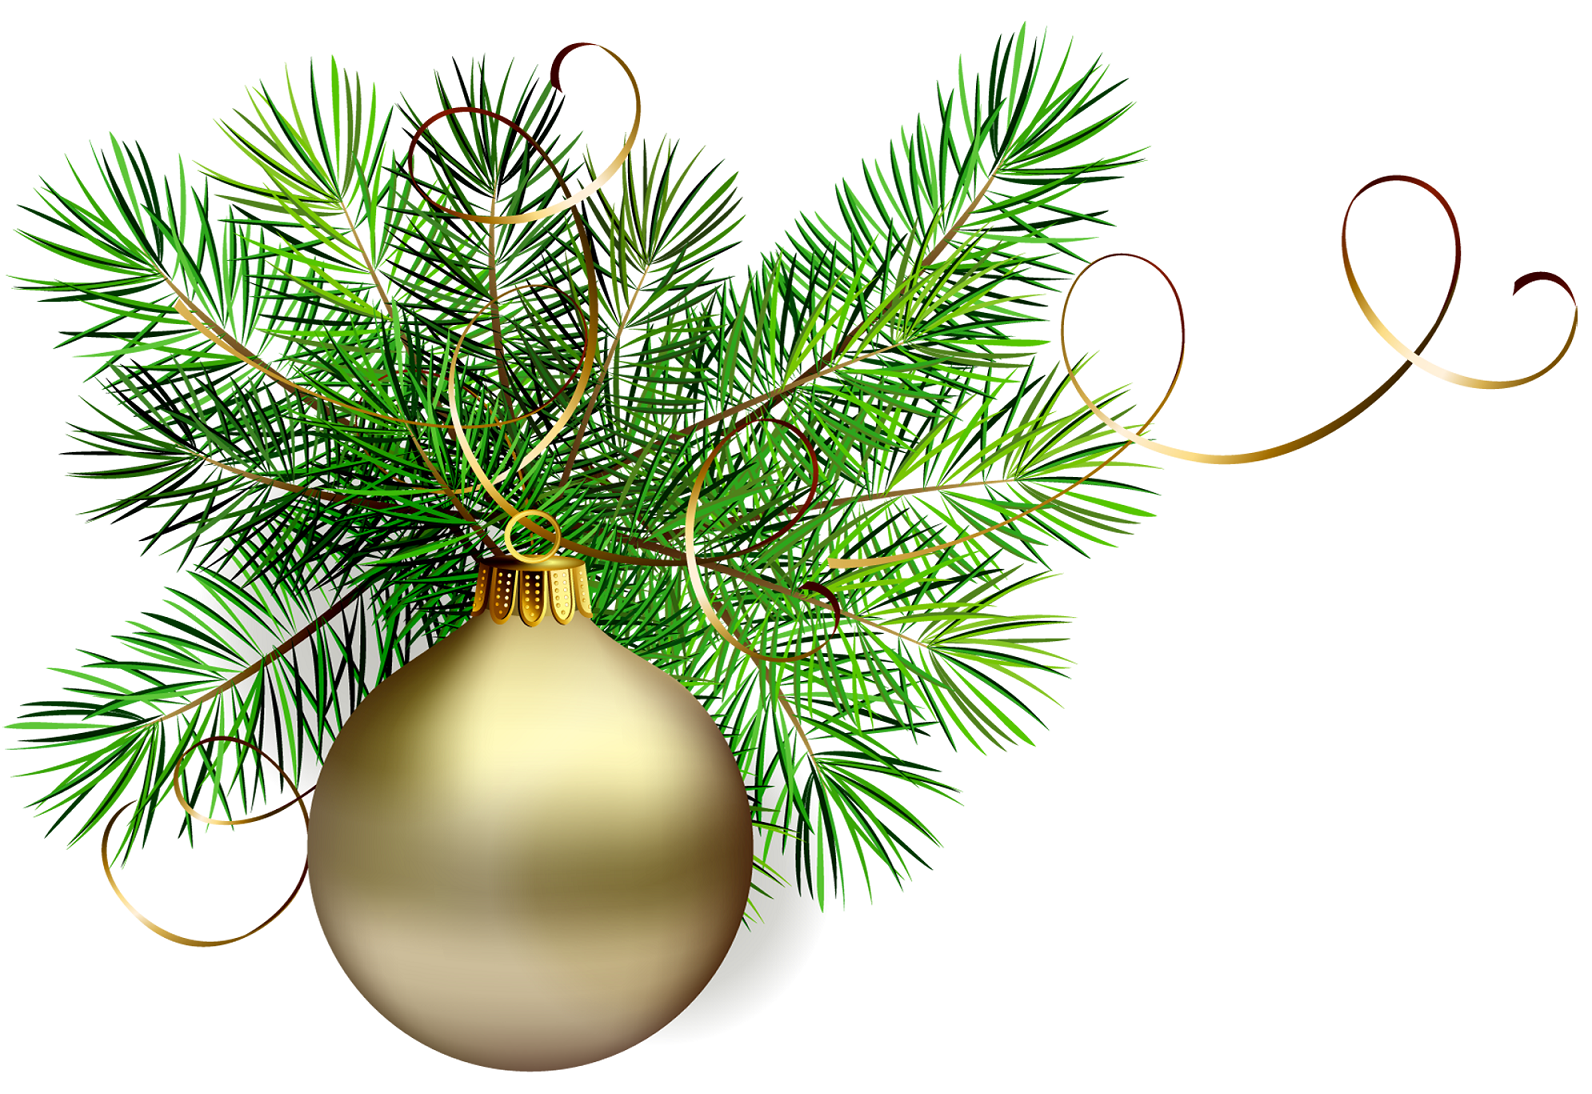 Gold Christmas Bulb On A Pine Branch   Clip Art Holiday Scrapbook Ca